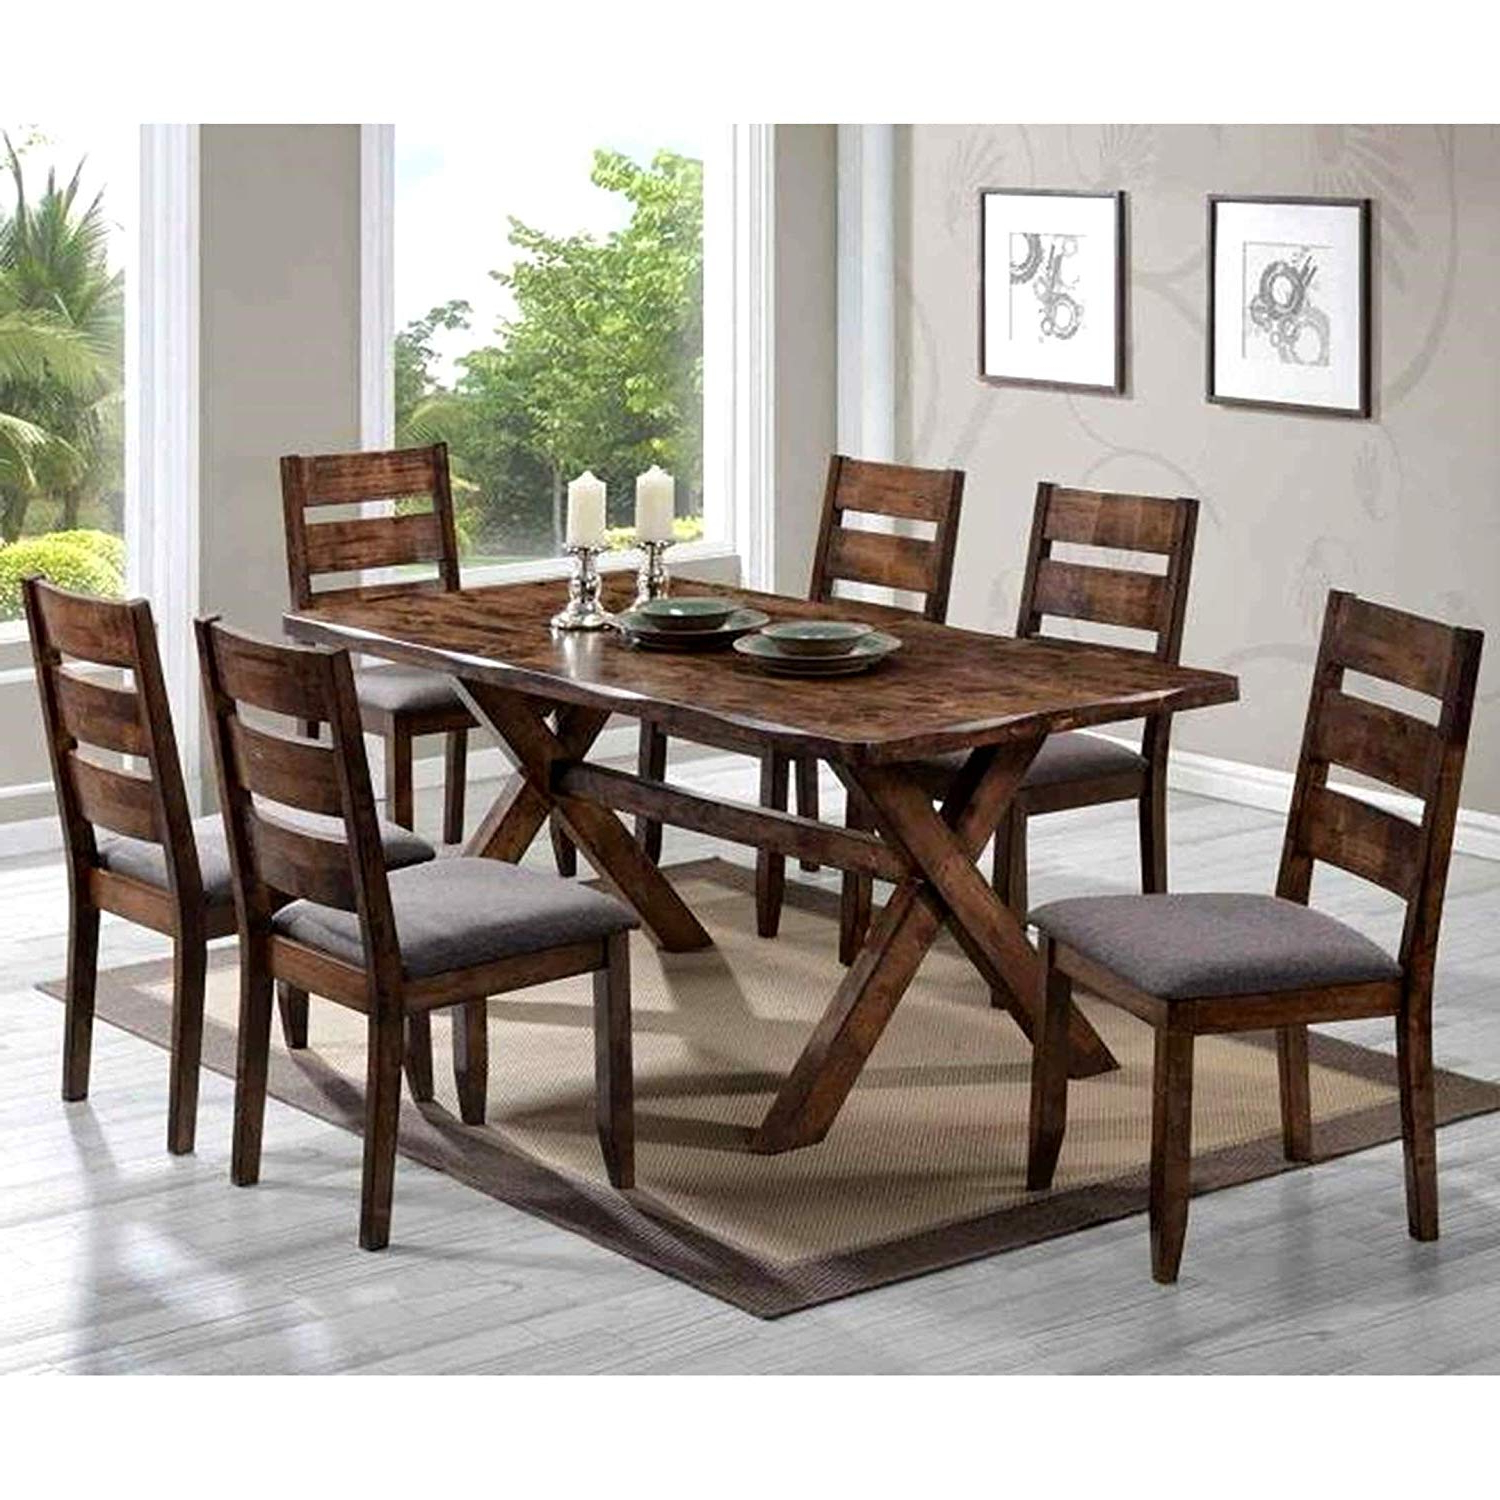 Favorite Small Rustic Look Dining Tables Regarding Amazon – A Line Furniture Milano Rustic Knotty Shaped (View 15 of 30)